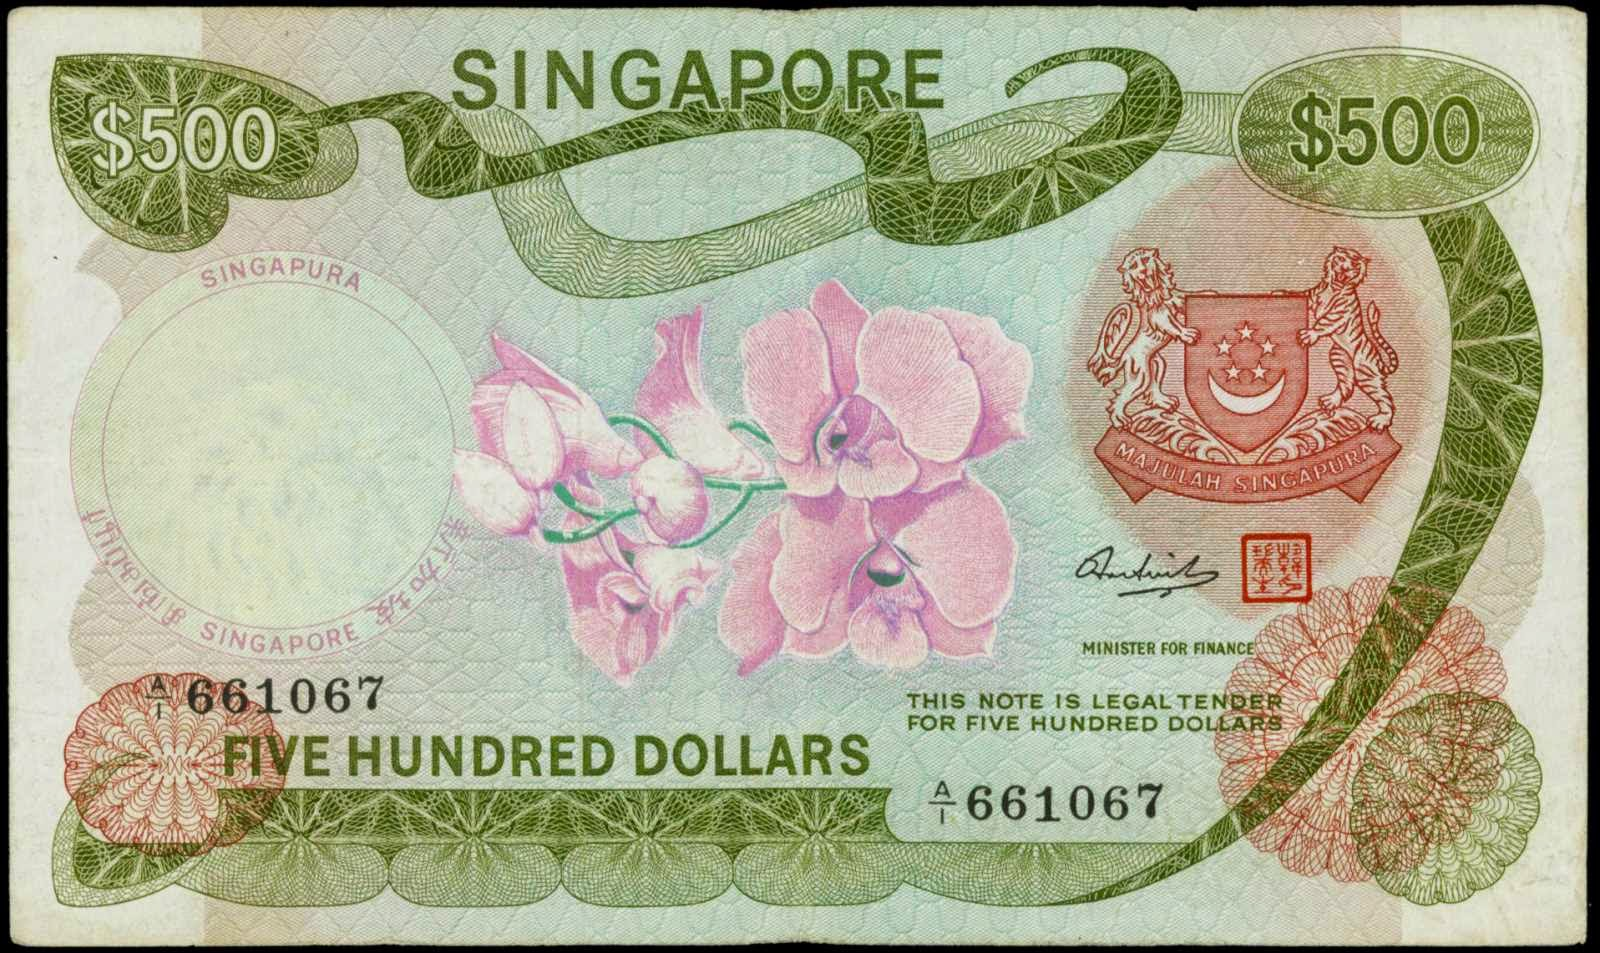 Singapore 500 Dollars banknote Orchid series currency notes